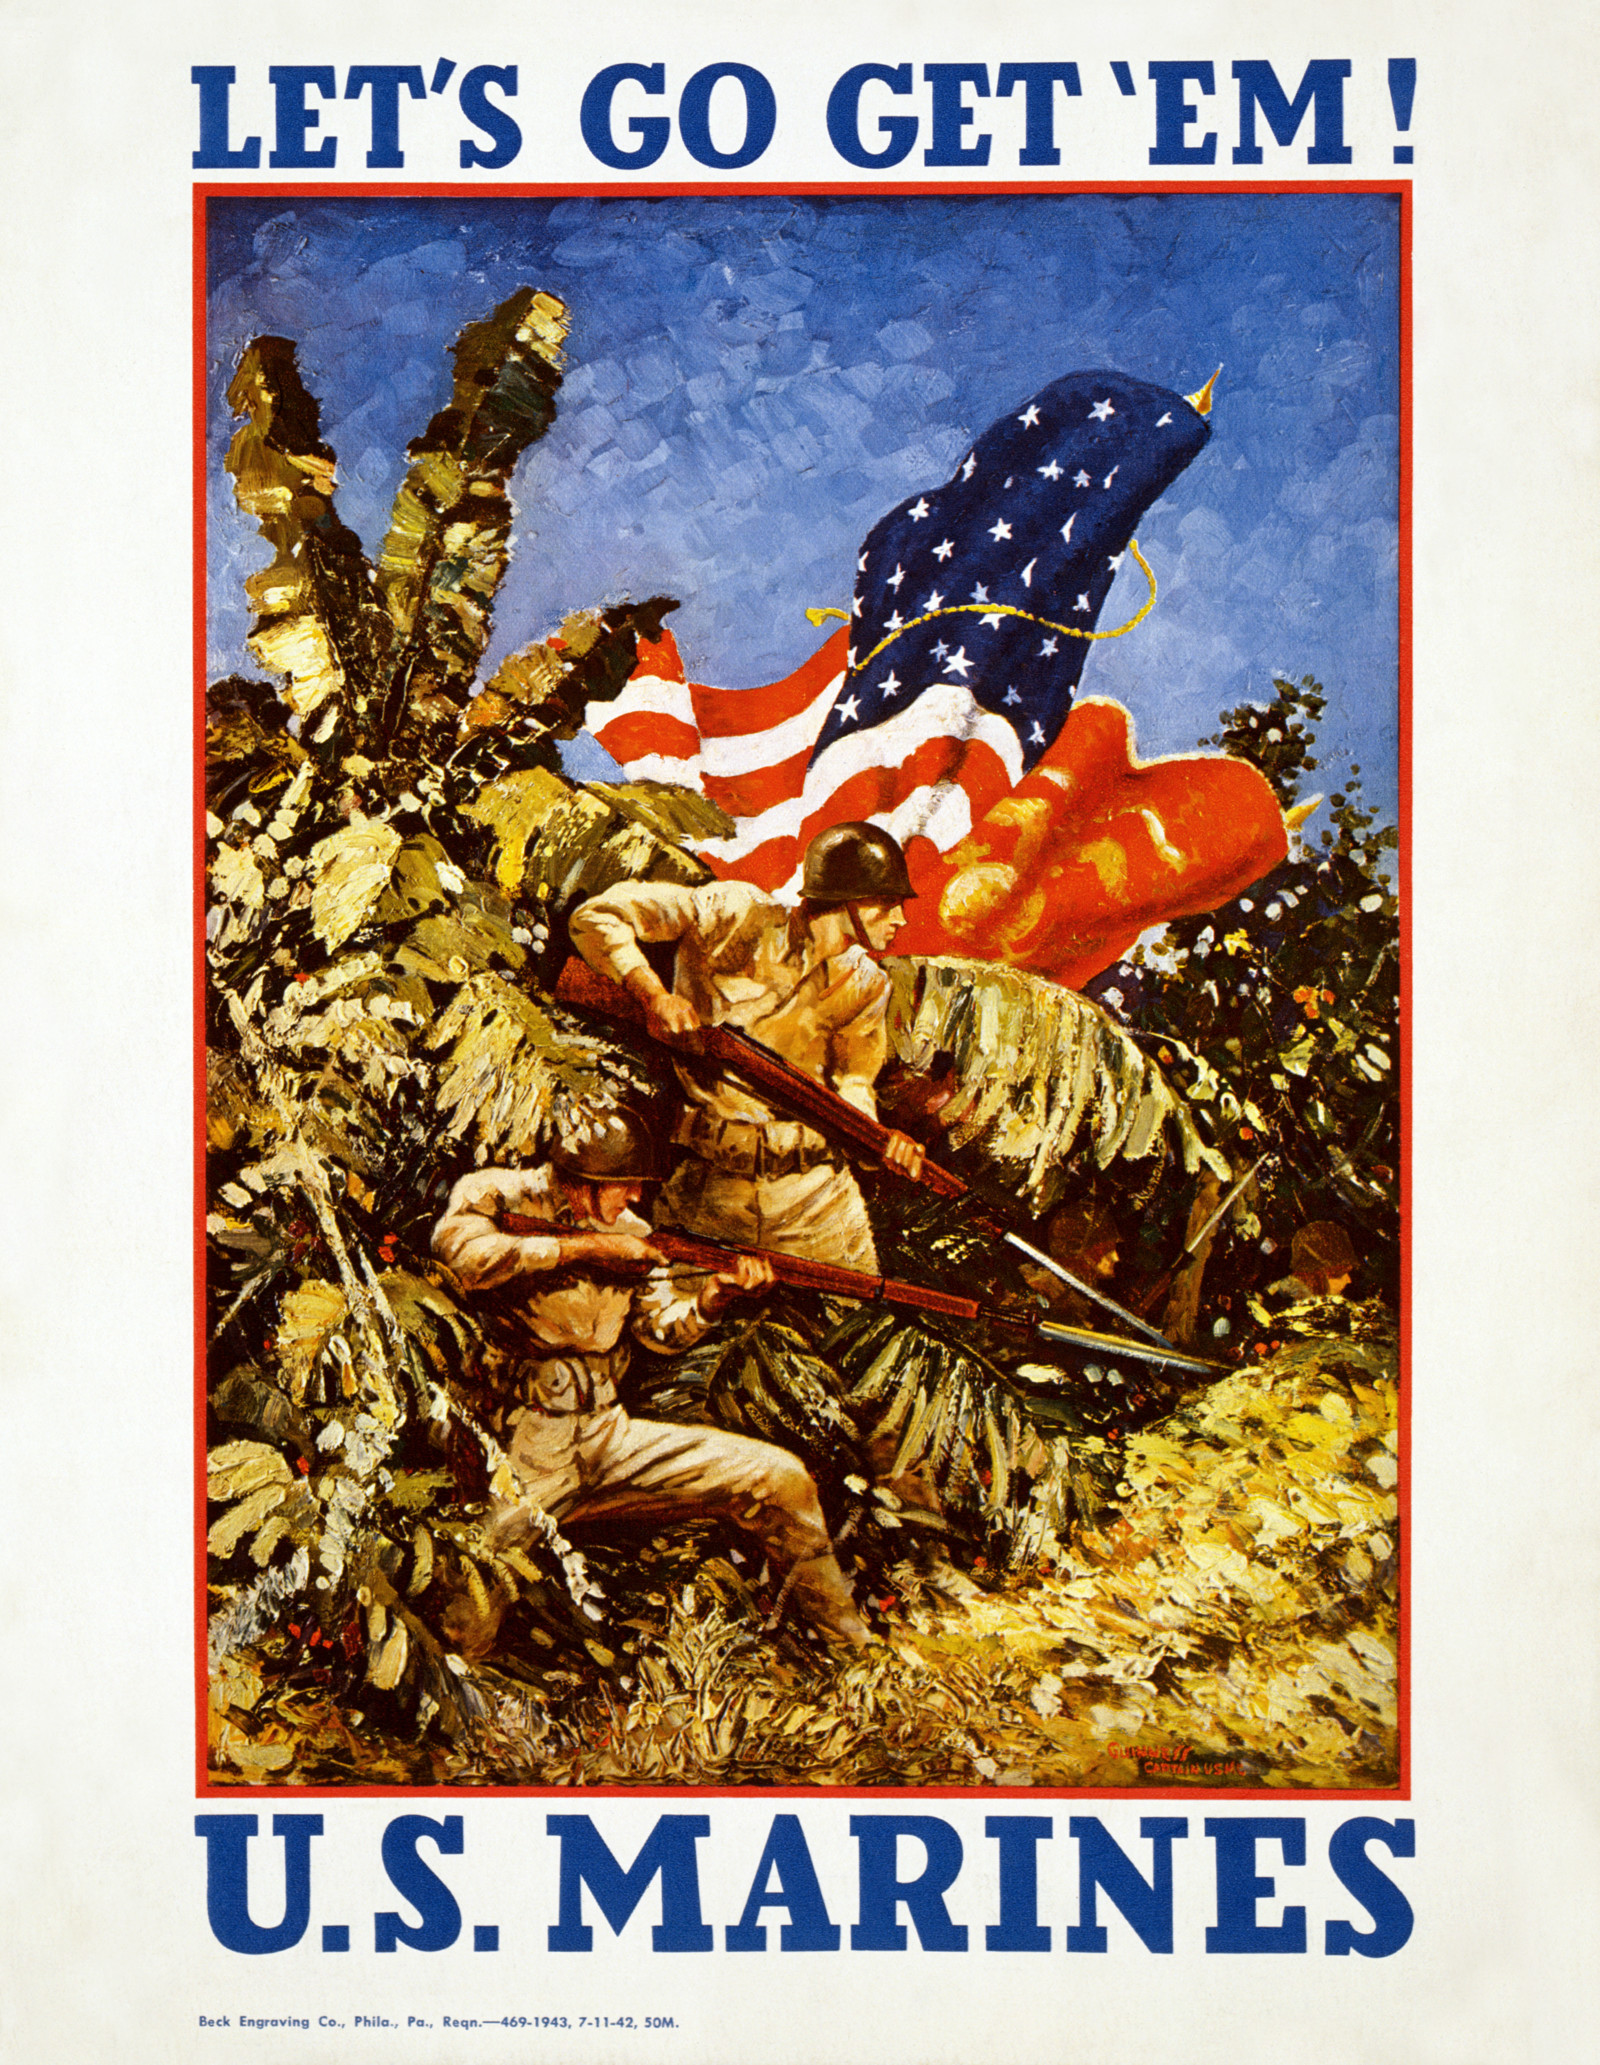 755 best images about Marine Corps on Pinterest   Marine corps .